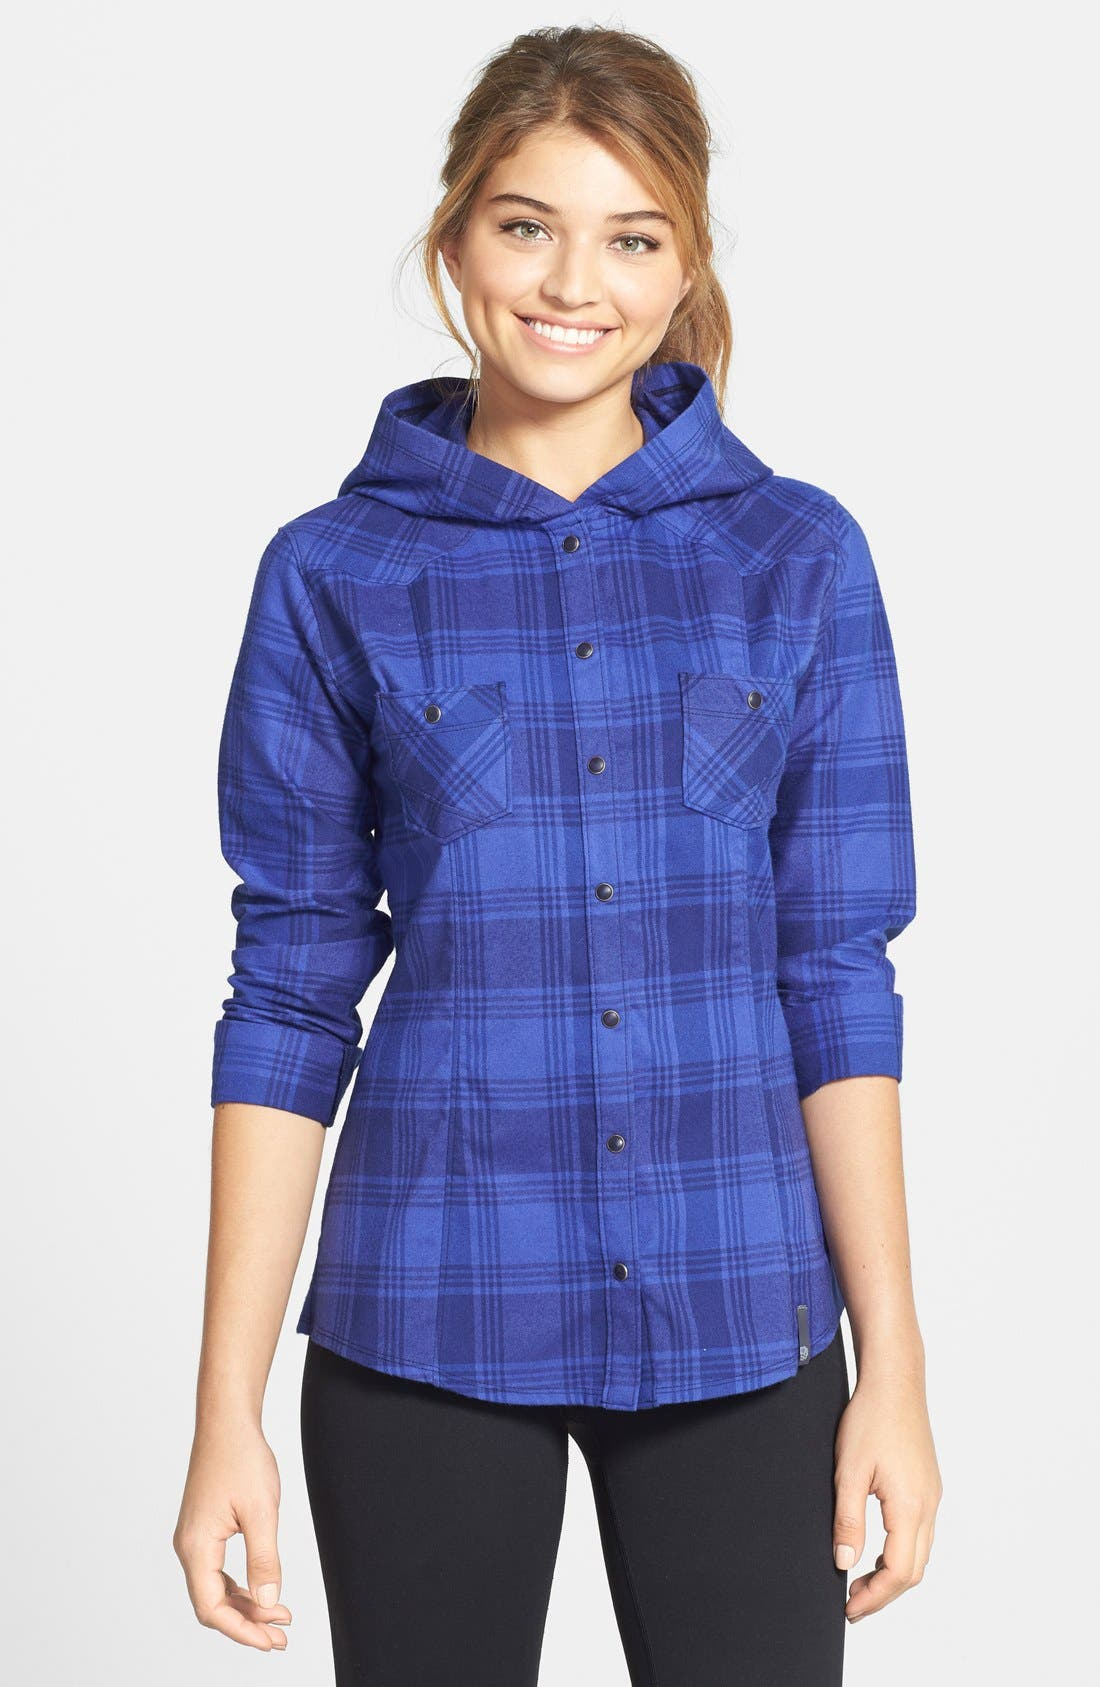 MOUNTAIN HARDWEAR 'Stretchstone Flannel<sup>™</sup>' Hooded Shirt, Main, color, 401